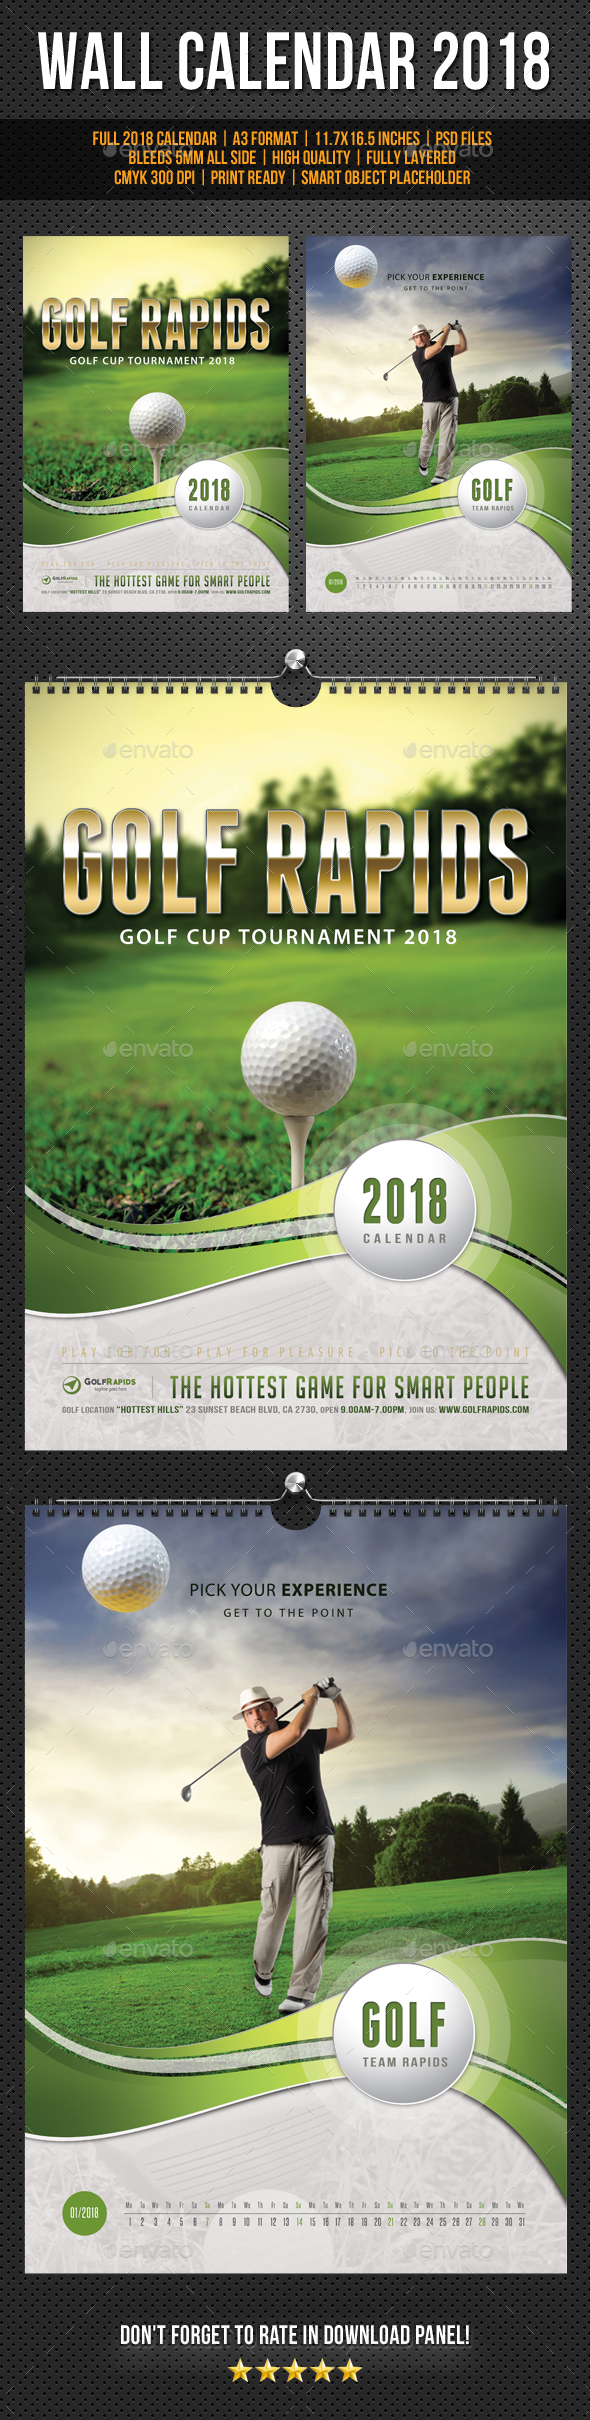 Golf Play Wall Calendar A3 2018